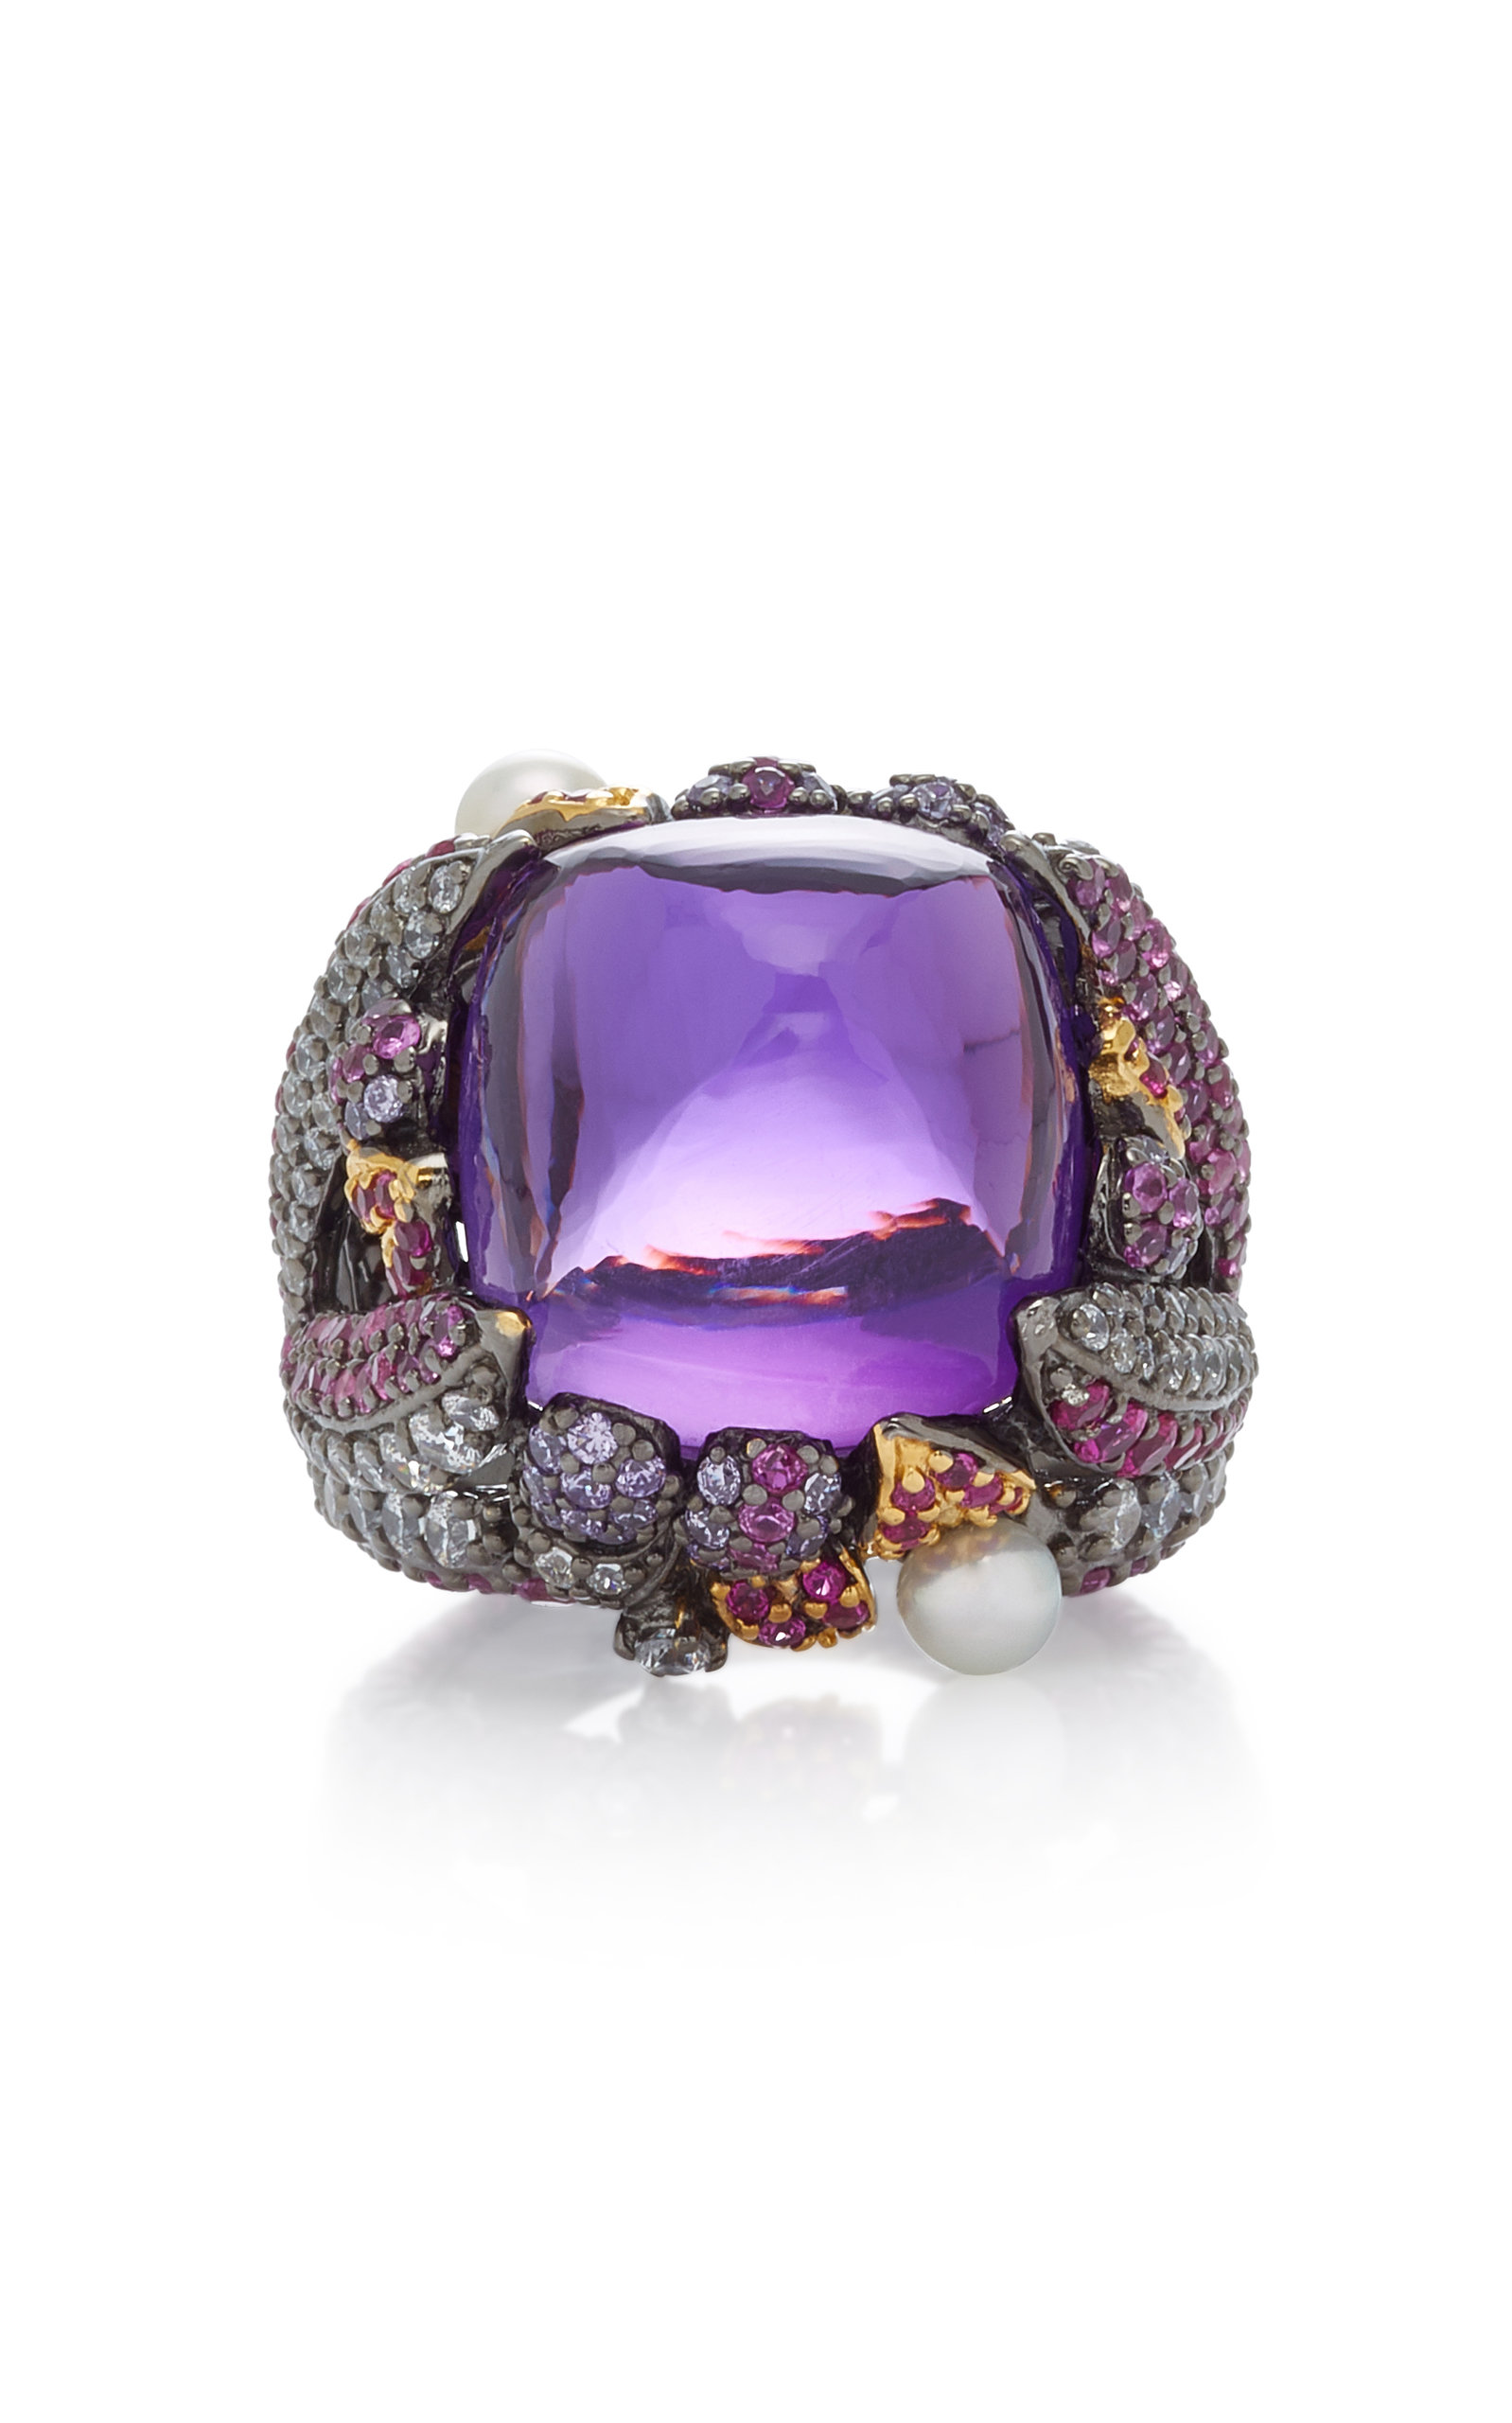 ANABELA CHAN Sugarloaf Berry 18K Gold Vermeil Multi-Stone Ring in Purple